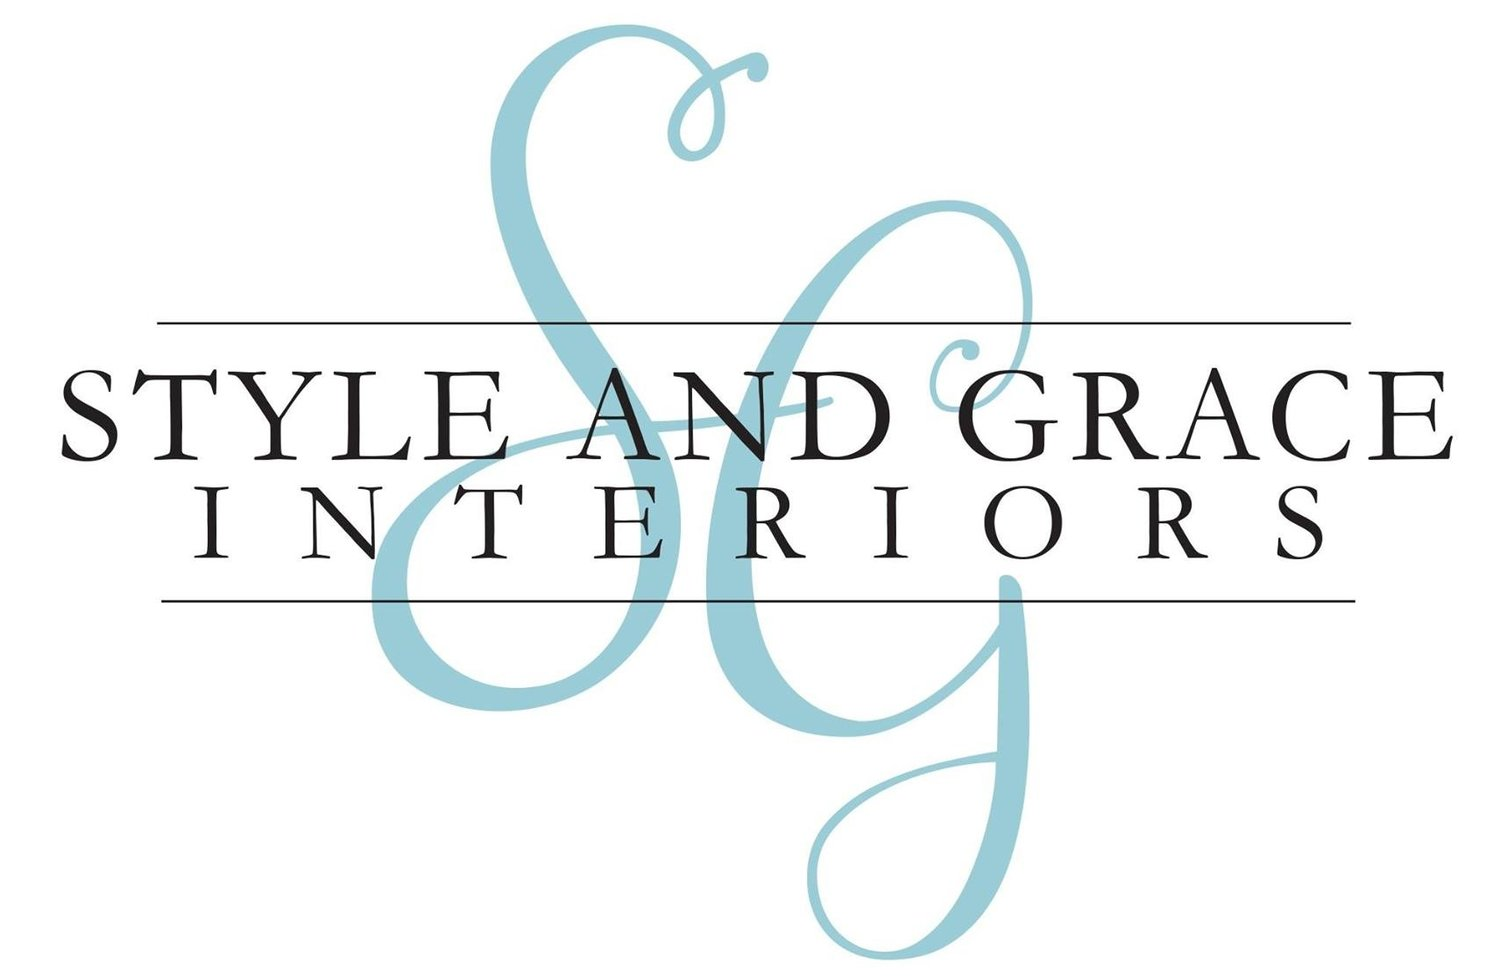 Style and Grace Interiors